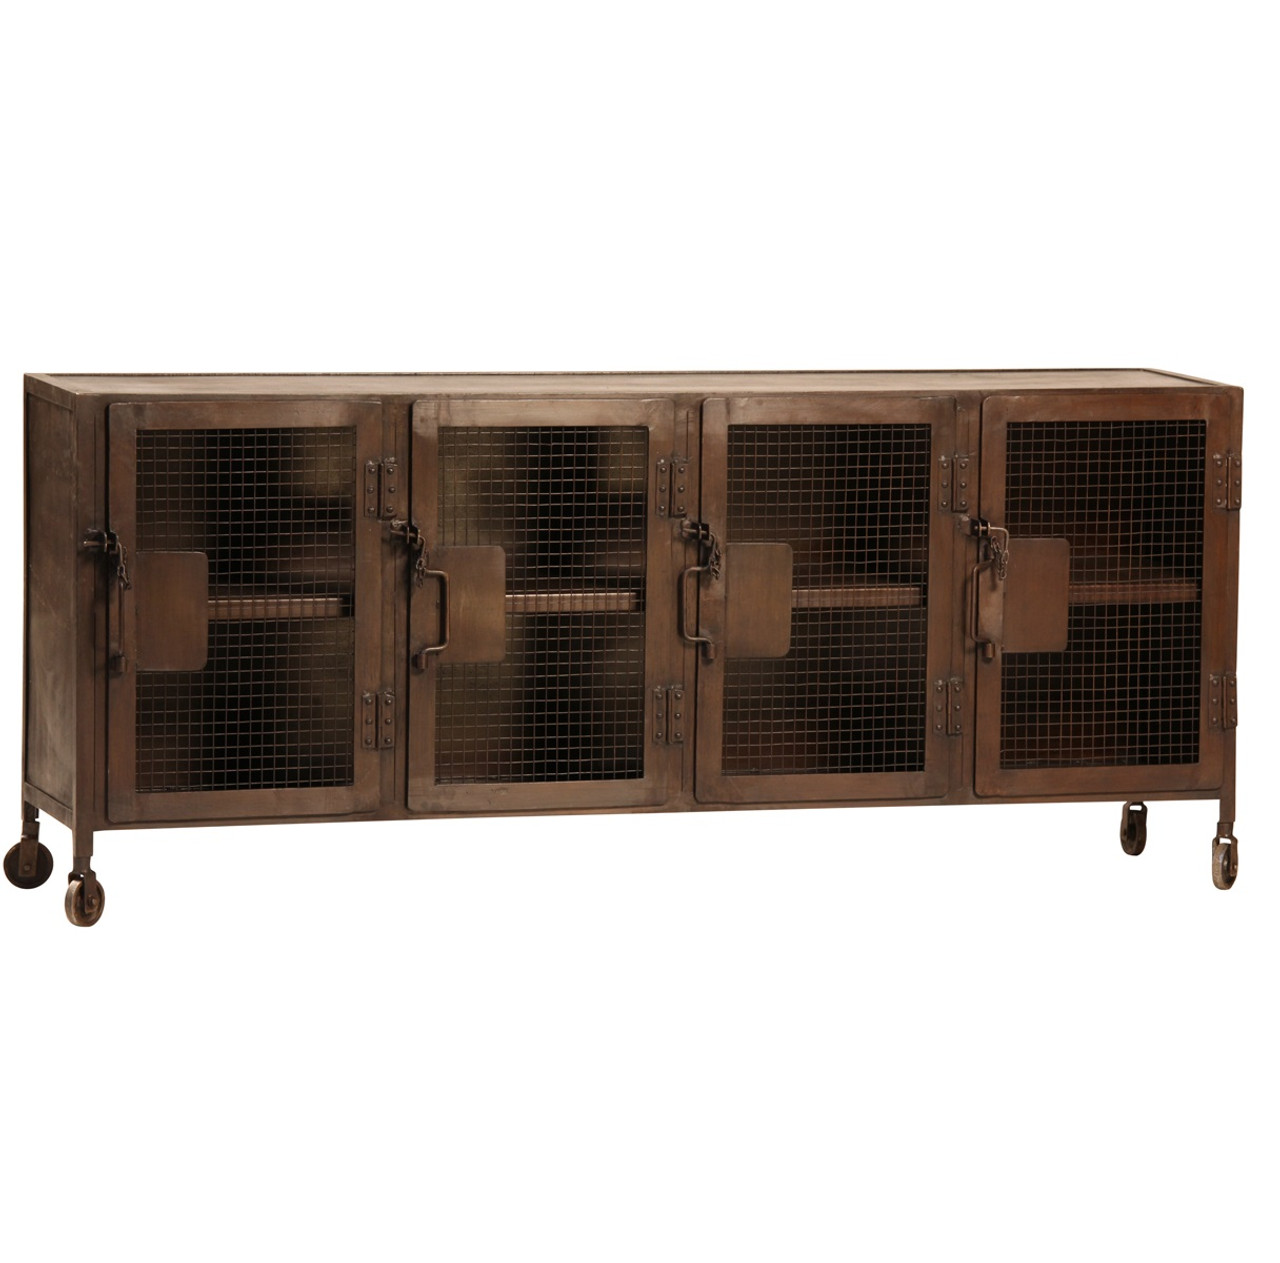 Sideboard Industrial vintage industrial iron sideboard console zin home